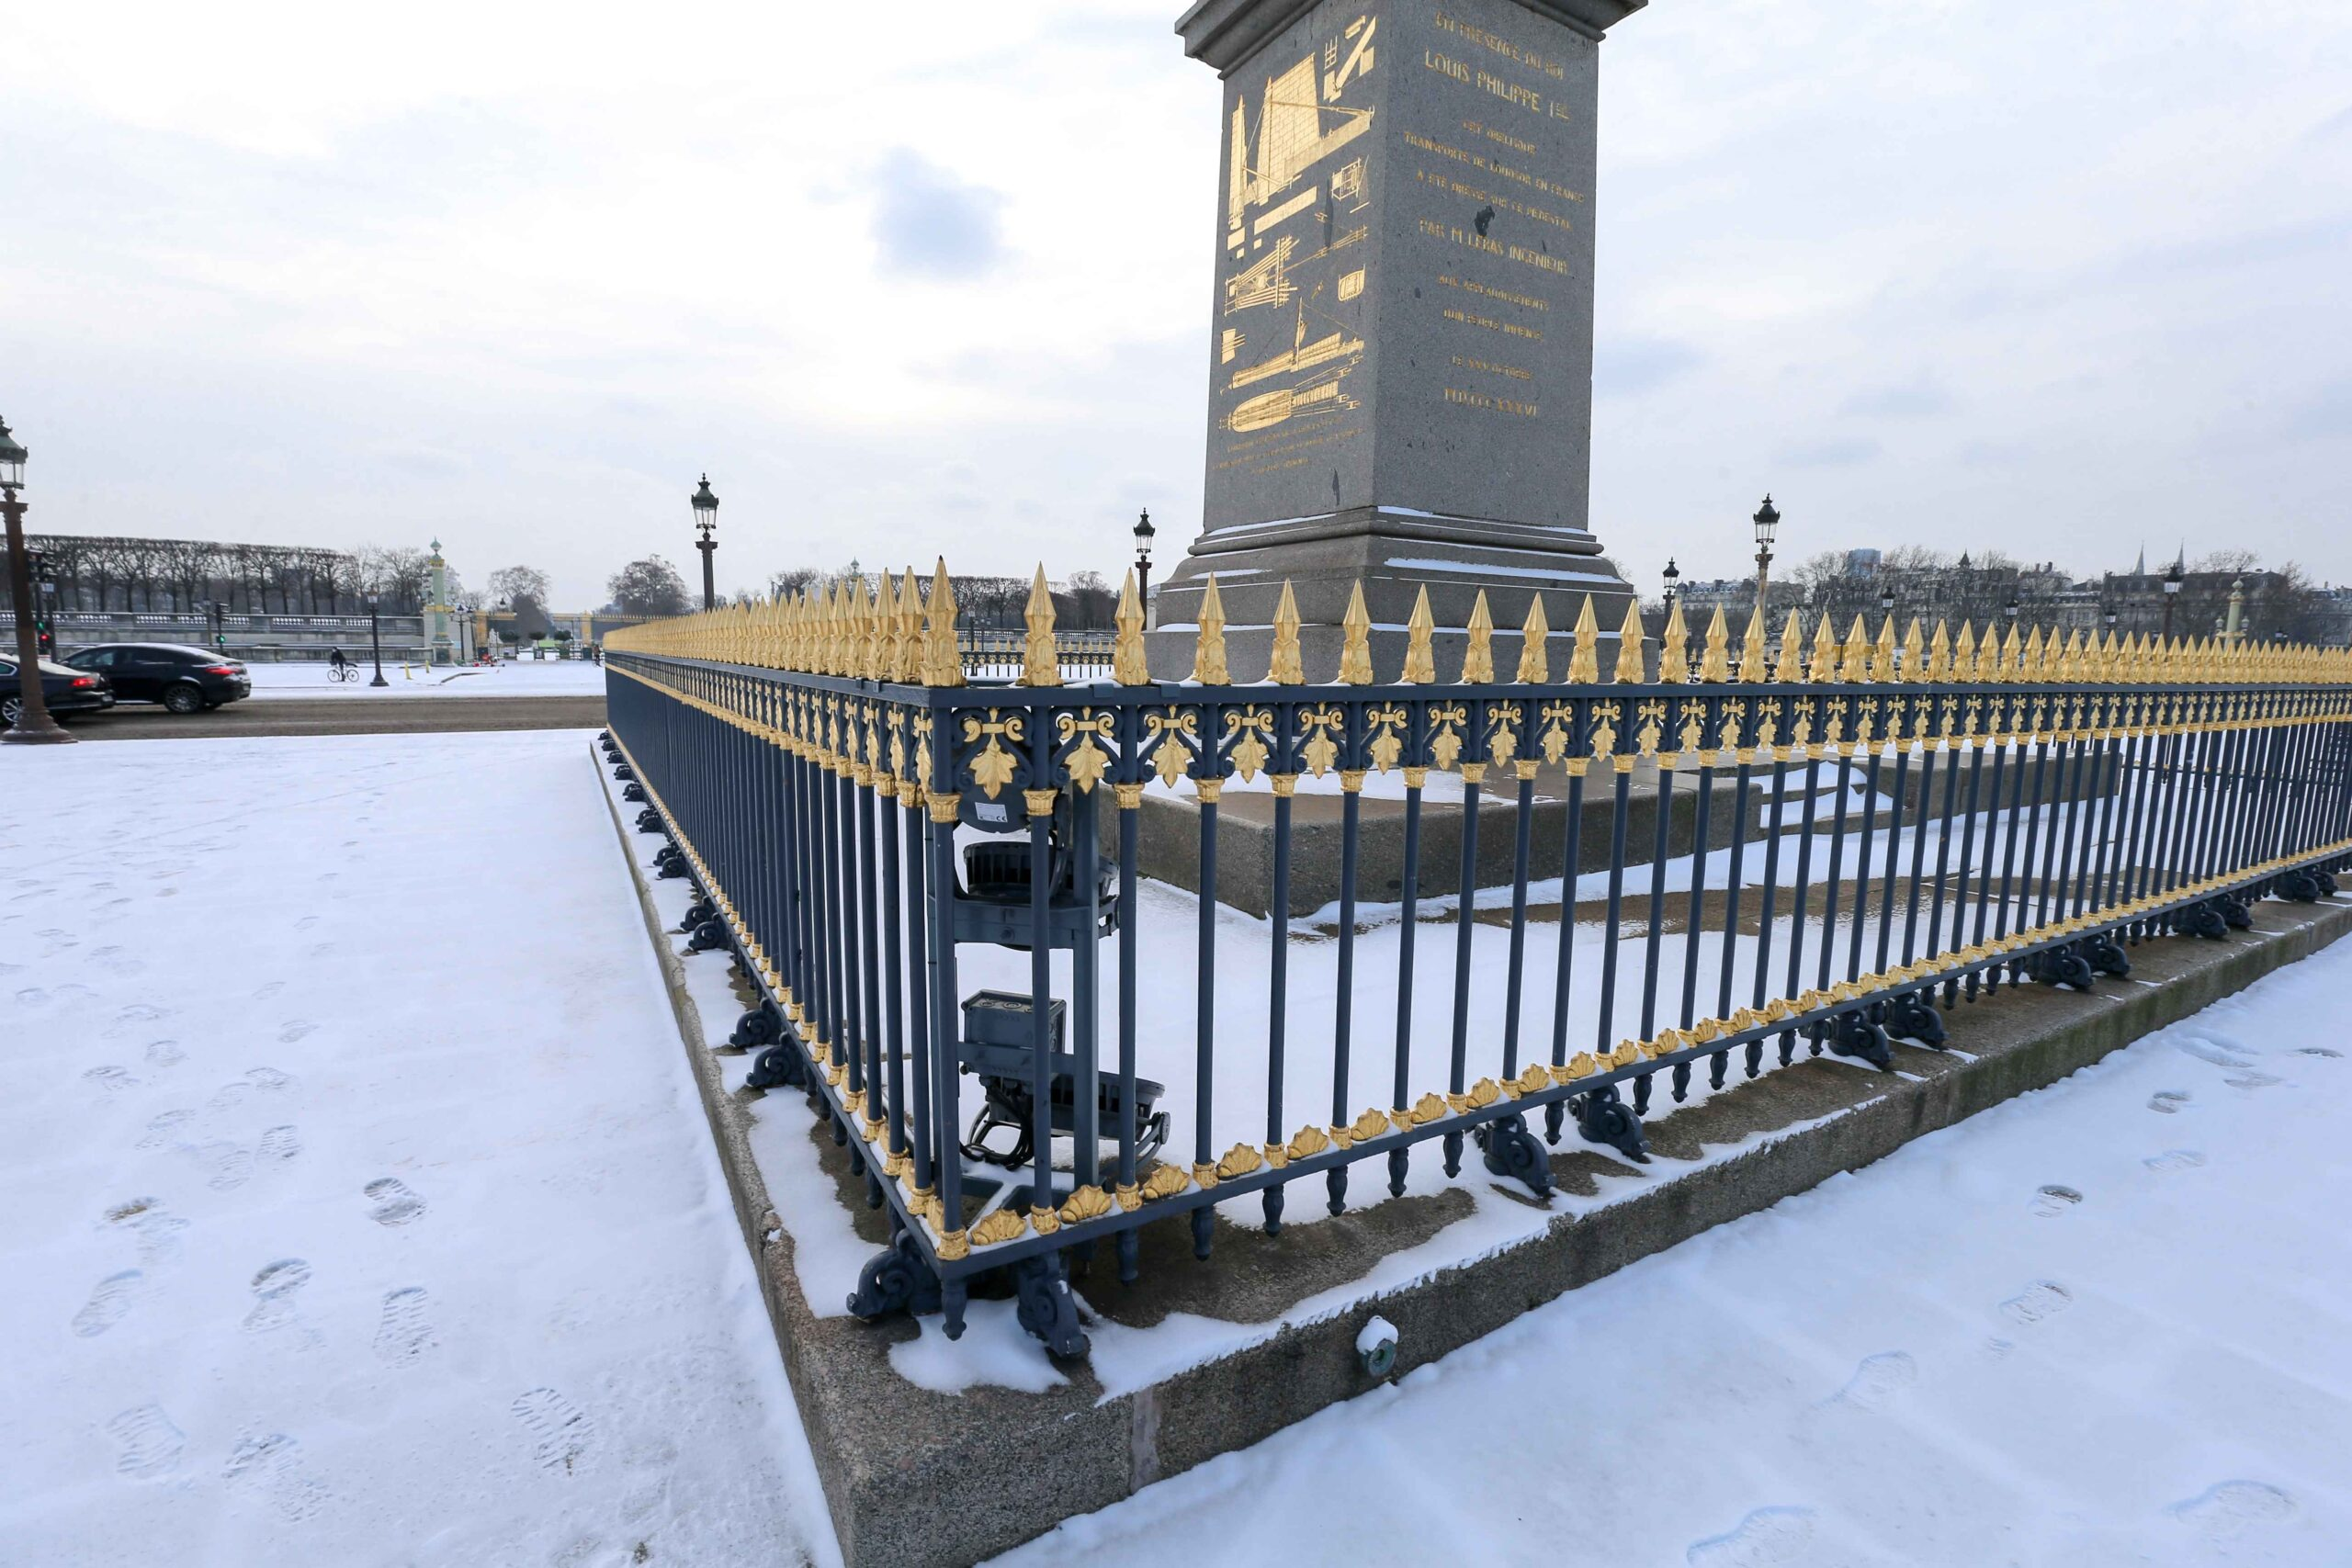 The foot of the Obelisk of the Place de la Concorde, in Paris, are covered in snow on February 10, 2021, following an overnight snowfall. In parts of the Paris region authorities cancelled school buses and urged parents to keep children at home. The city o